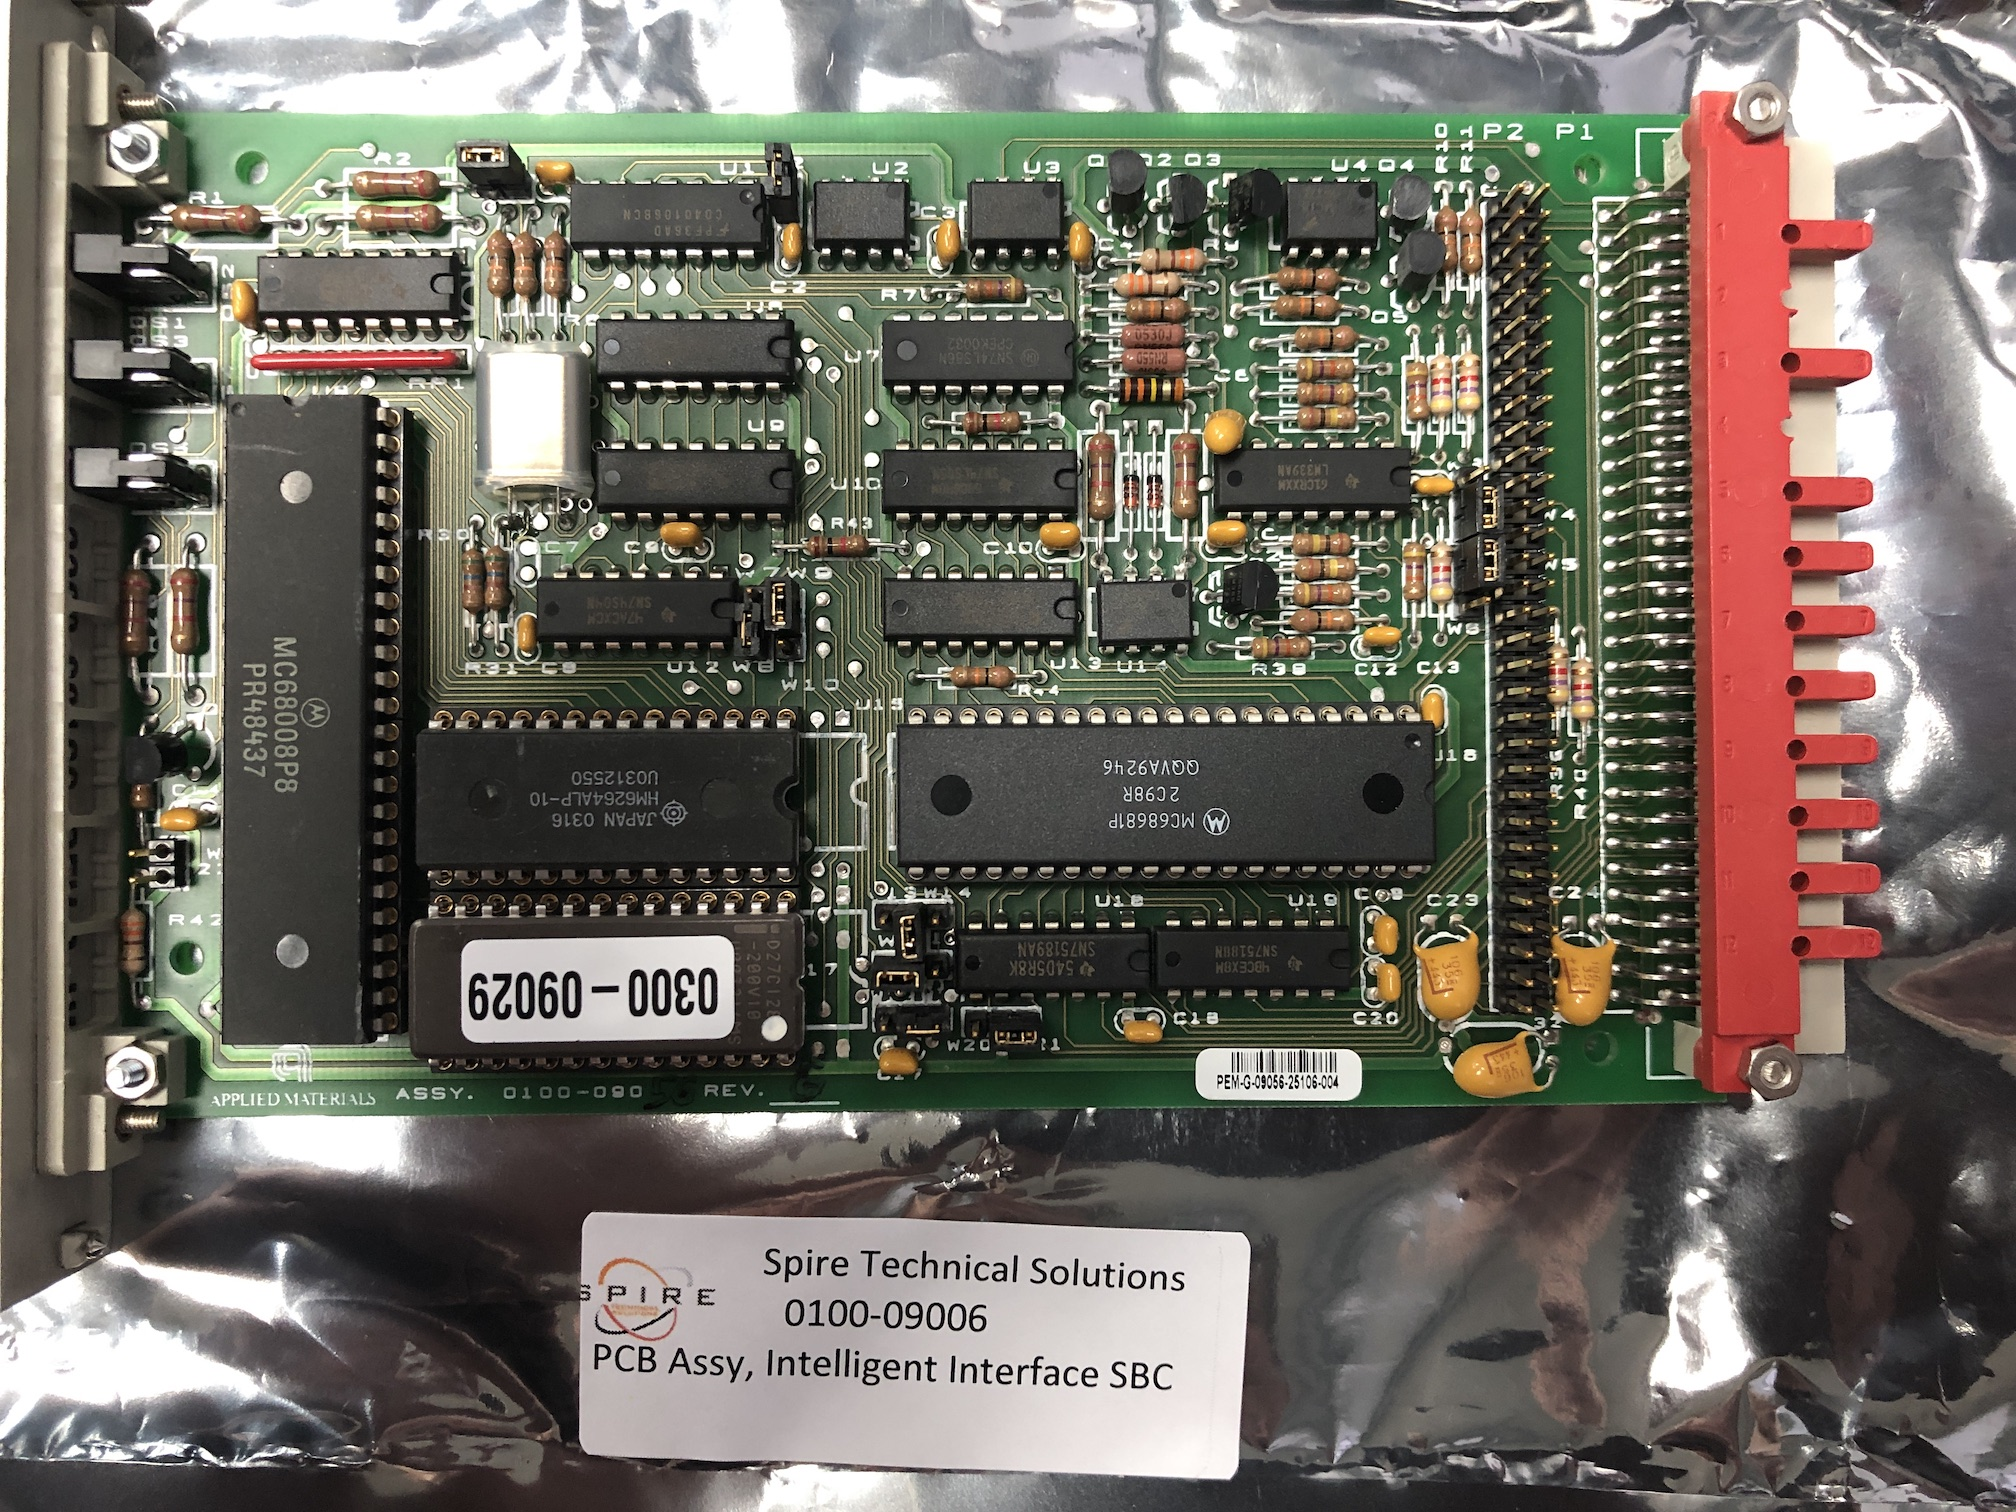 PCB Assy, Intelligent Interface SBC